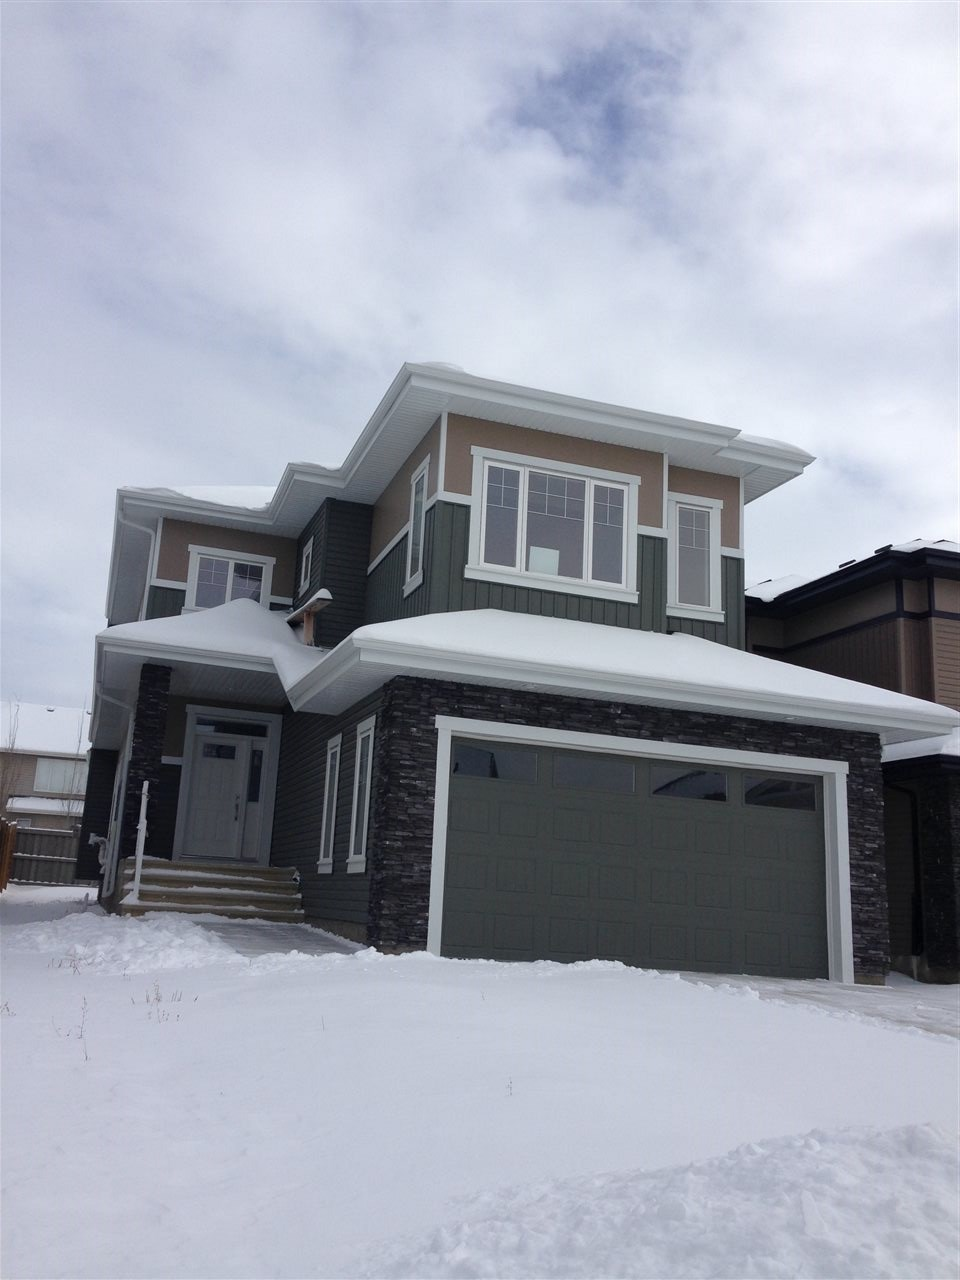 Main Photo: 1019 175 Street in Edmonton: Zone 56 House for sale : MLS(r) # E4058646